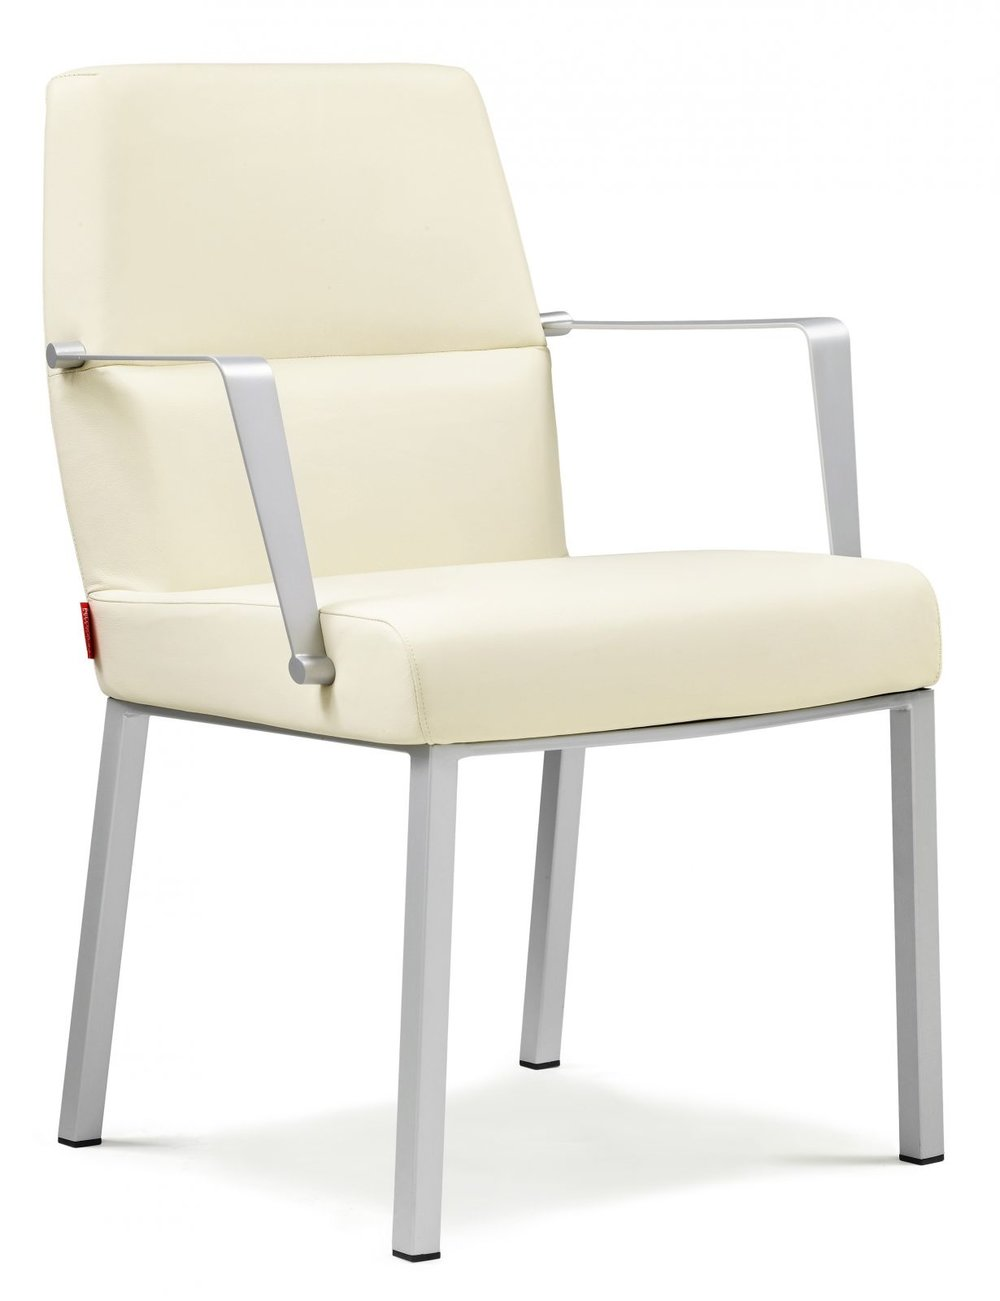 modern-office-armchairs-Italian-furniture-designer-armchairs (45).jpg